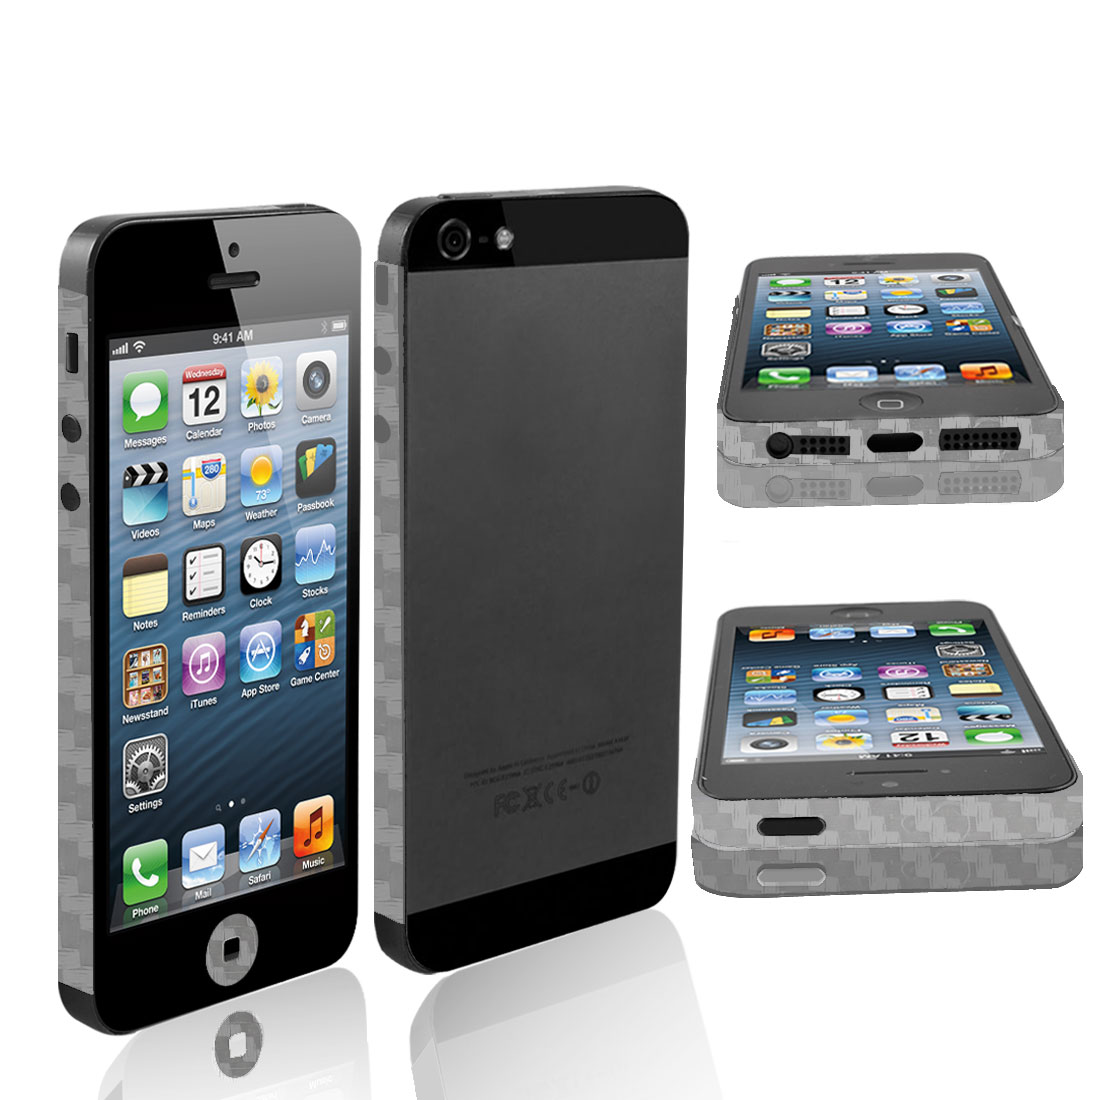 Clear Vinyl Edge Wrap Decal Button Sticker Cover for iPhone 5 5G 5th